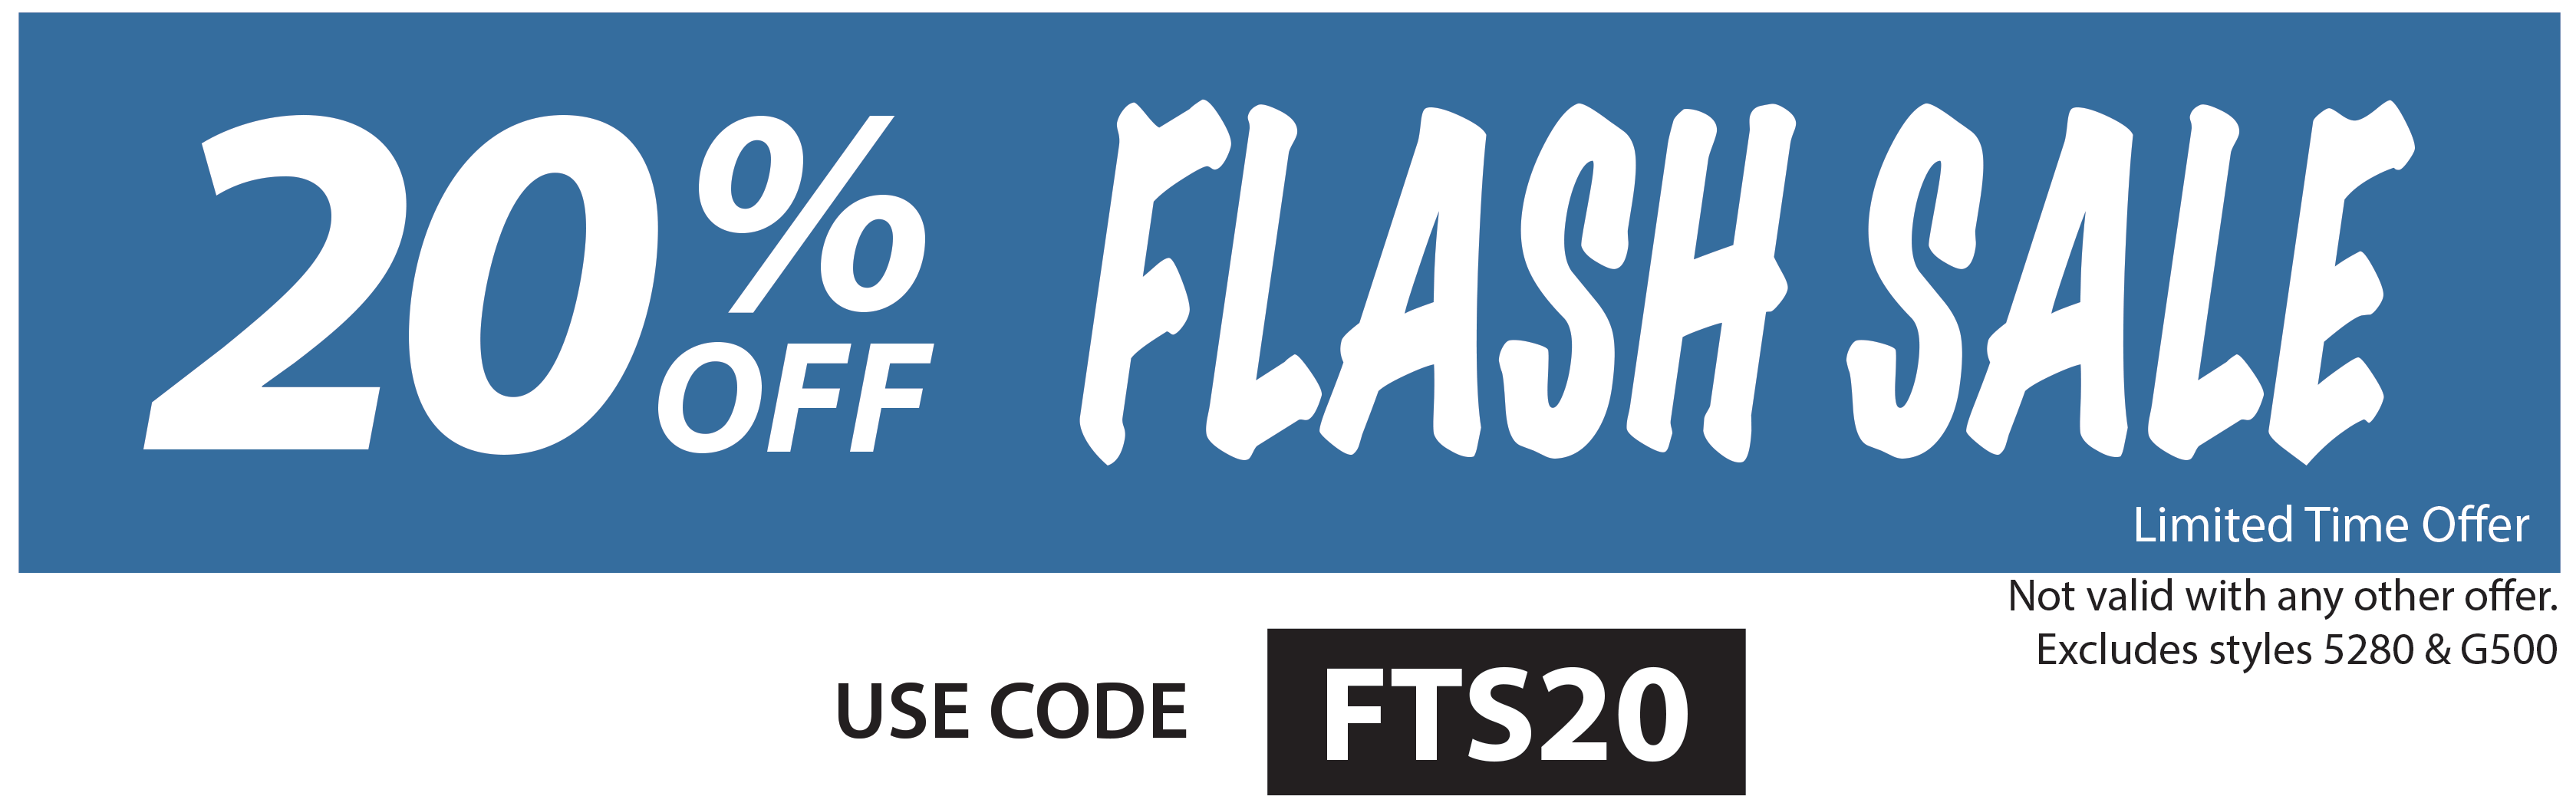 20% Off Flash Sale - Limited Time Offer - USE CODE FTS20